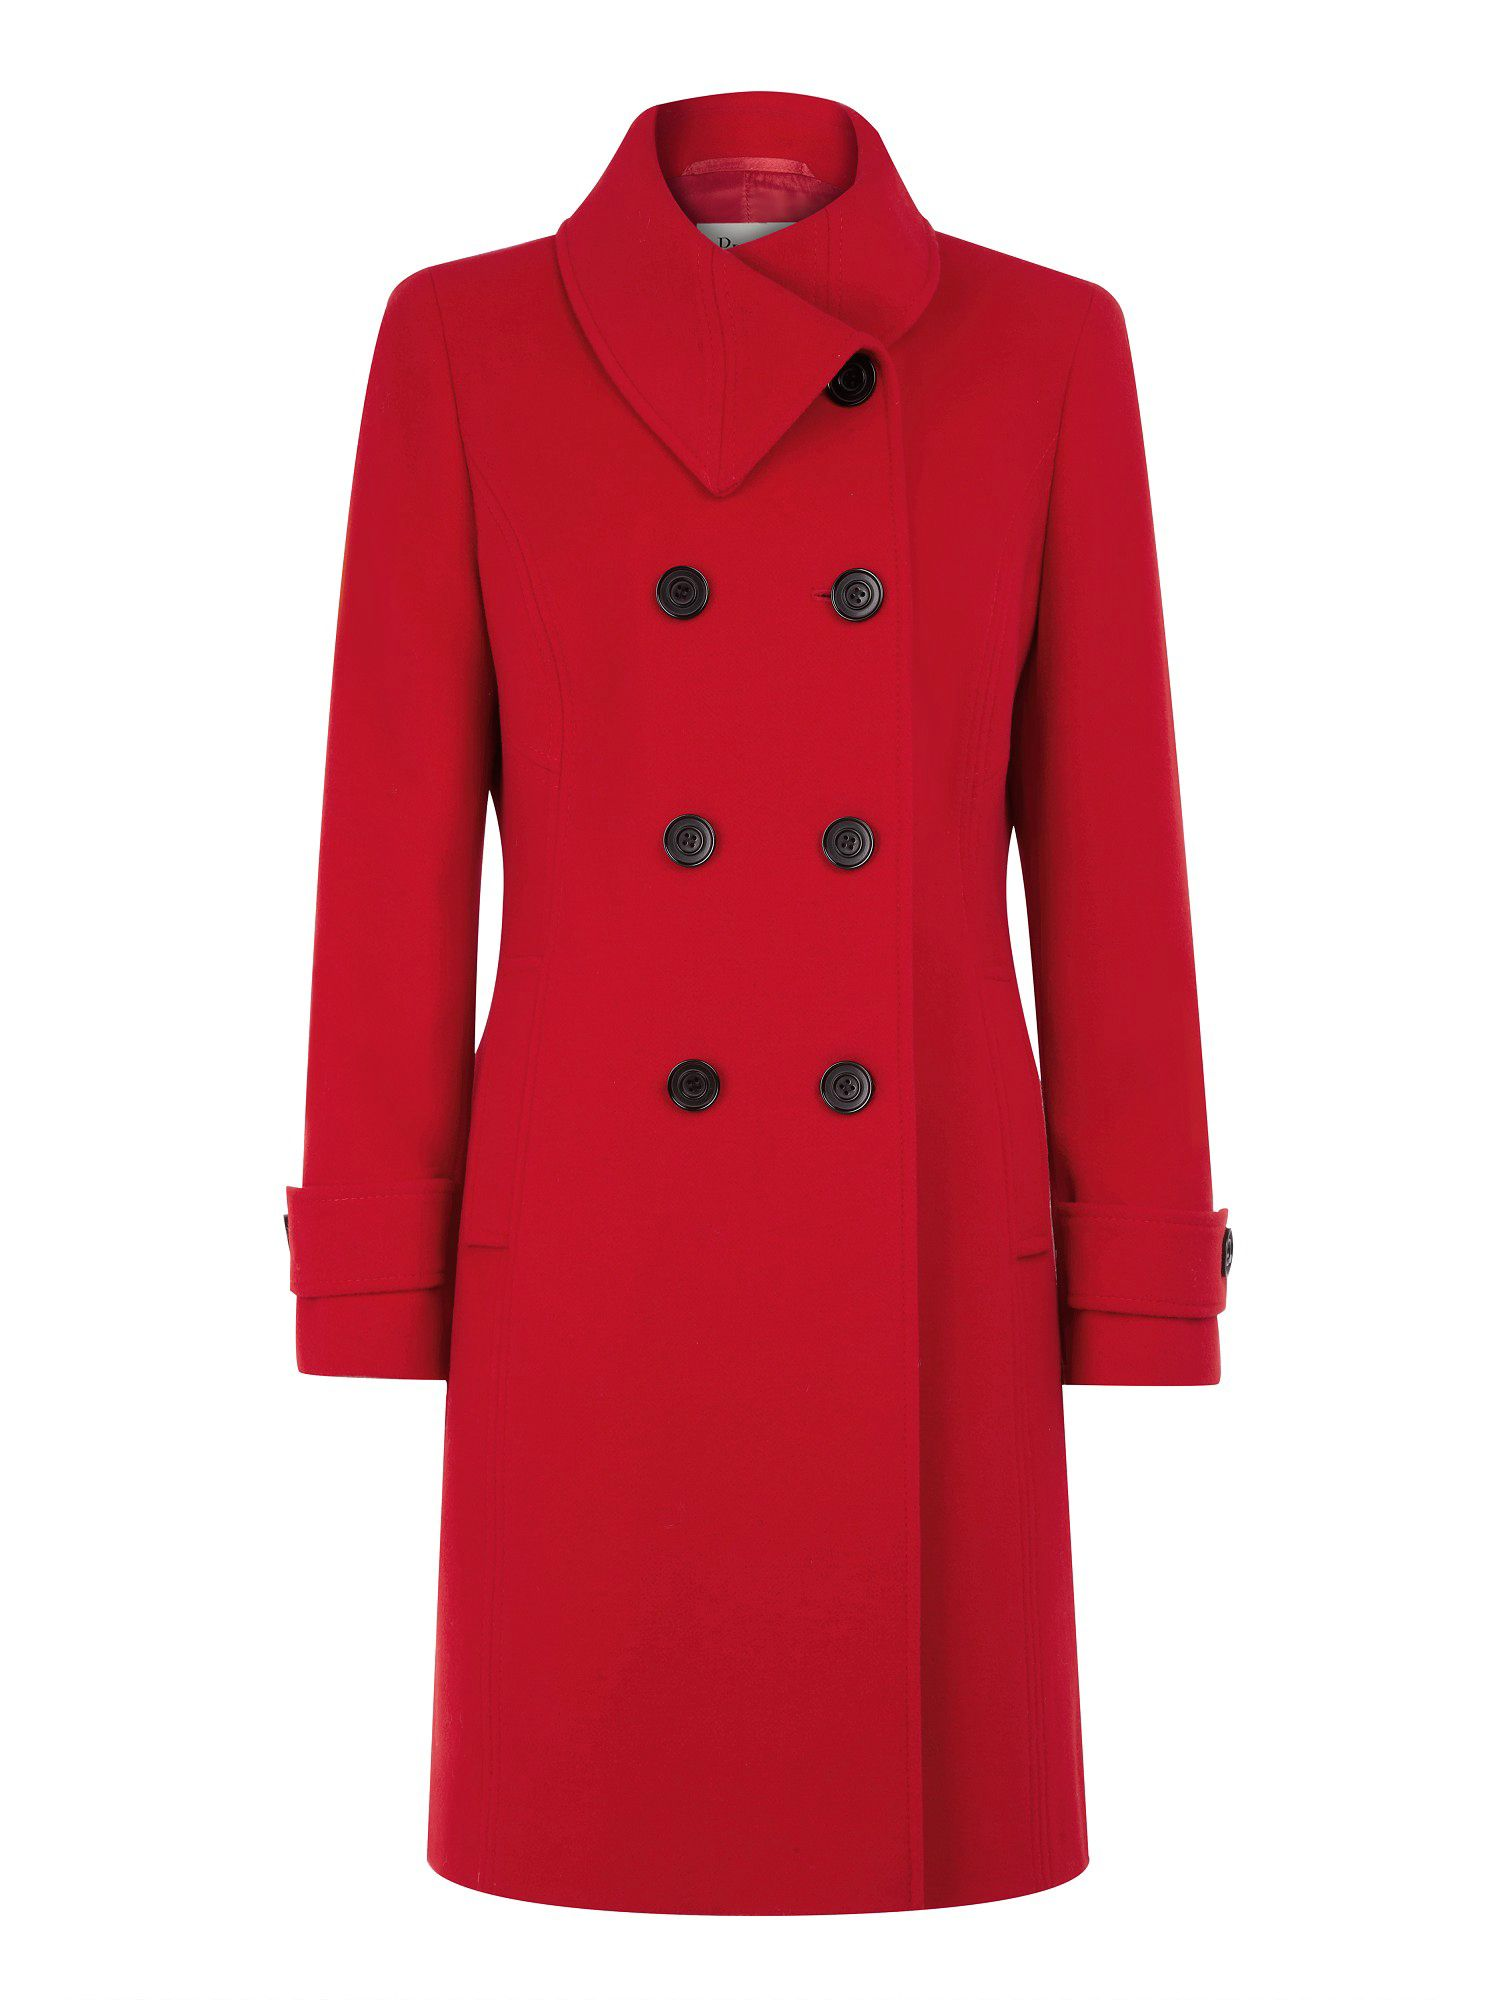 Asymmetrical Boiled Wool Coat - Regular is rated out of 5 by Rated 5 out of 5 by Berny from Absolutely Love This Coat I wanted a coat in navy that was .